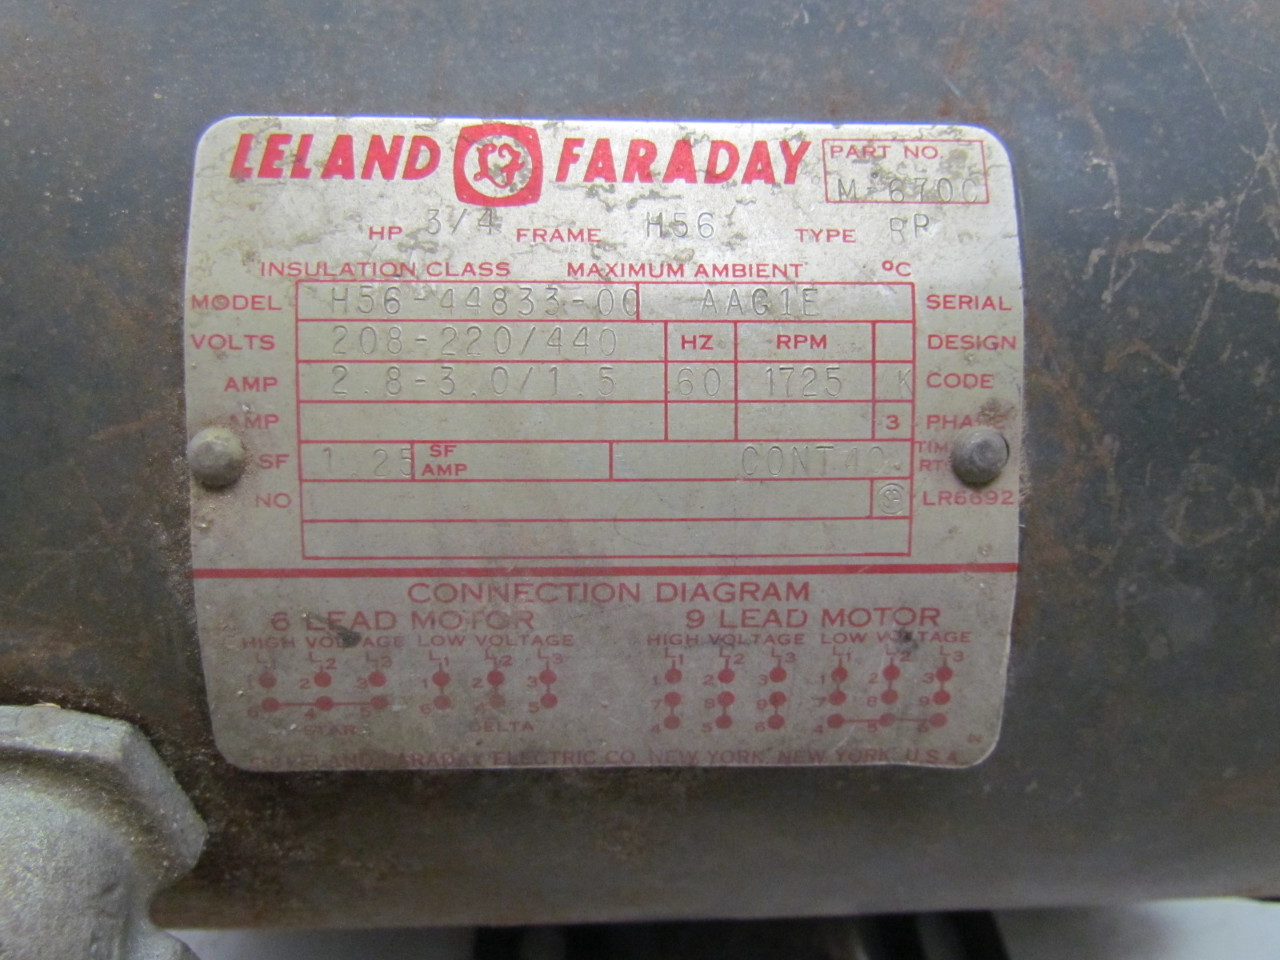 58791 leland faraday h56 44833 00 3ph 3 4hp electric motor 1725 rpm 208 220 440v h56 9 diagrams dayton electric motor wiring diagram dayton motor dayton 3 4 hp motor wiring diagram at soozxer.org